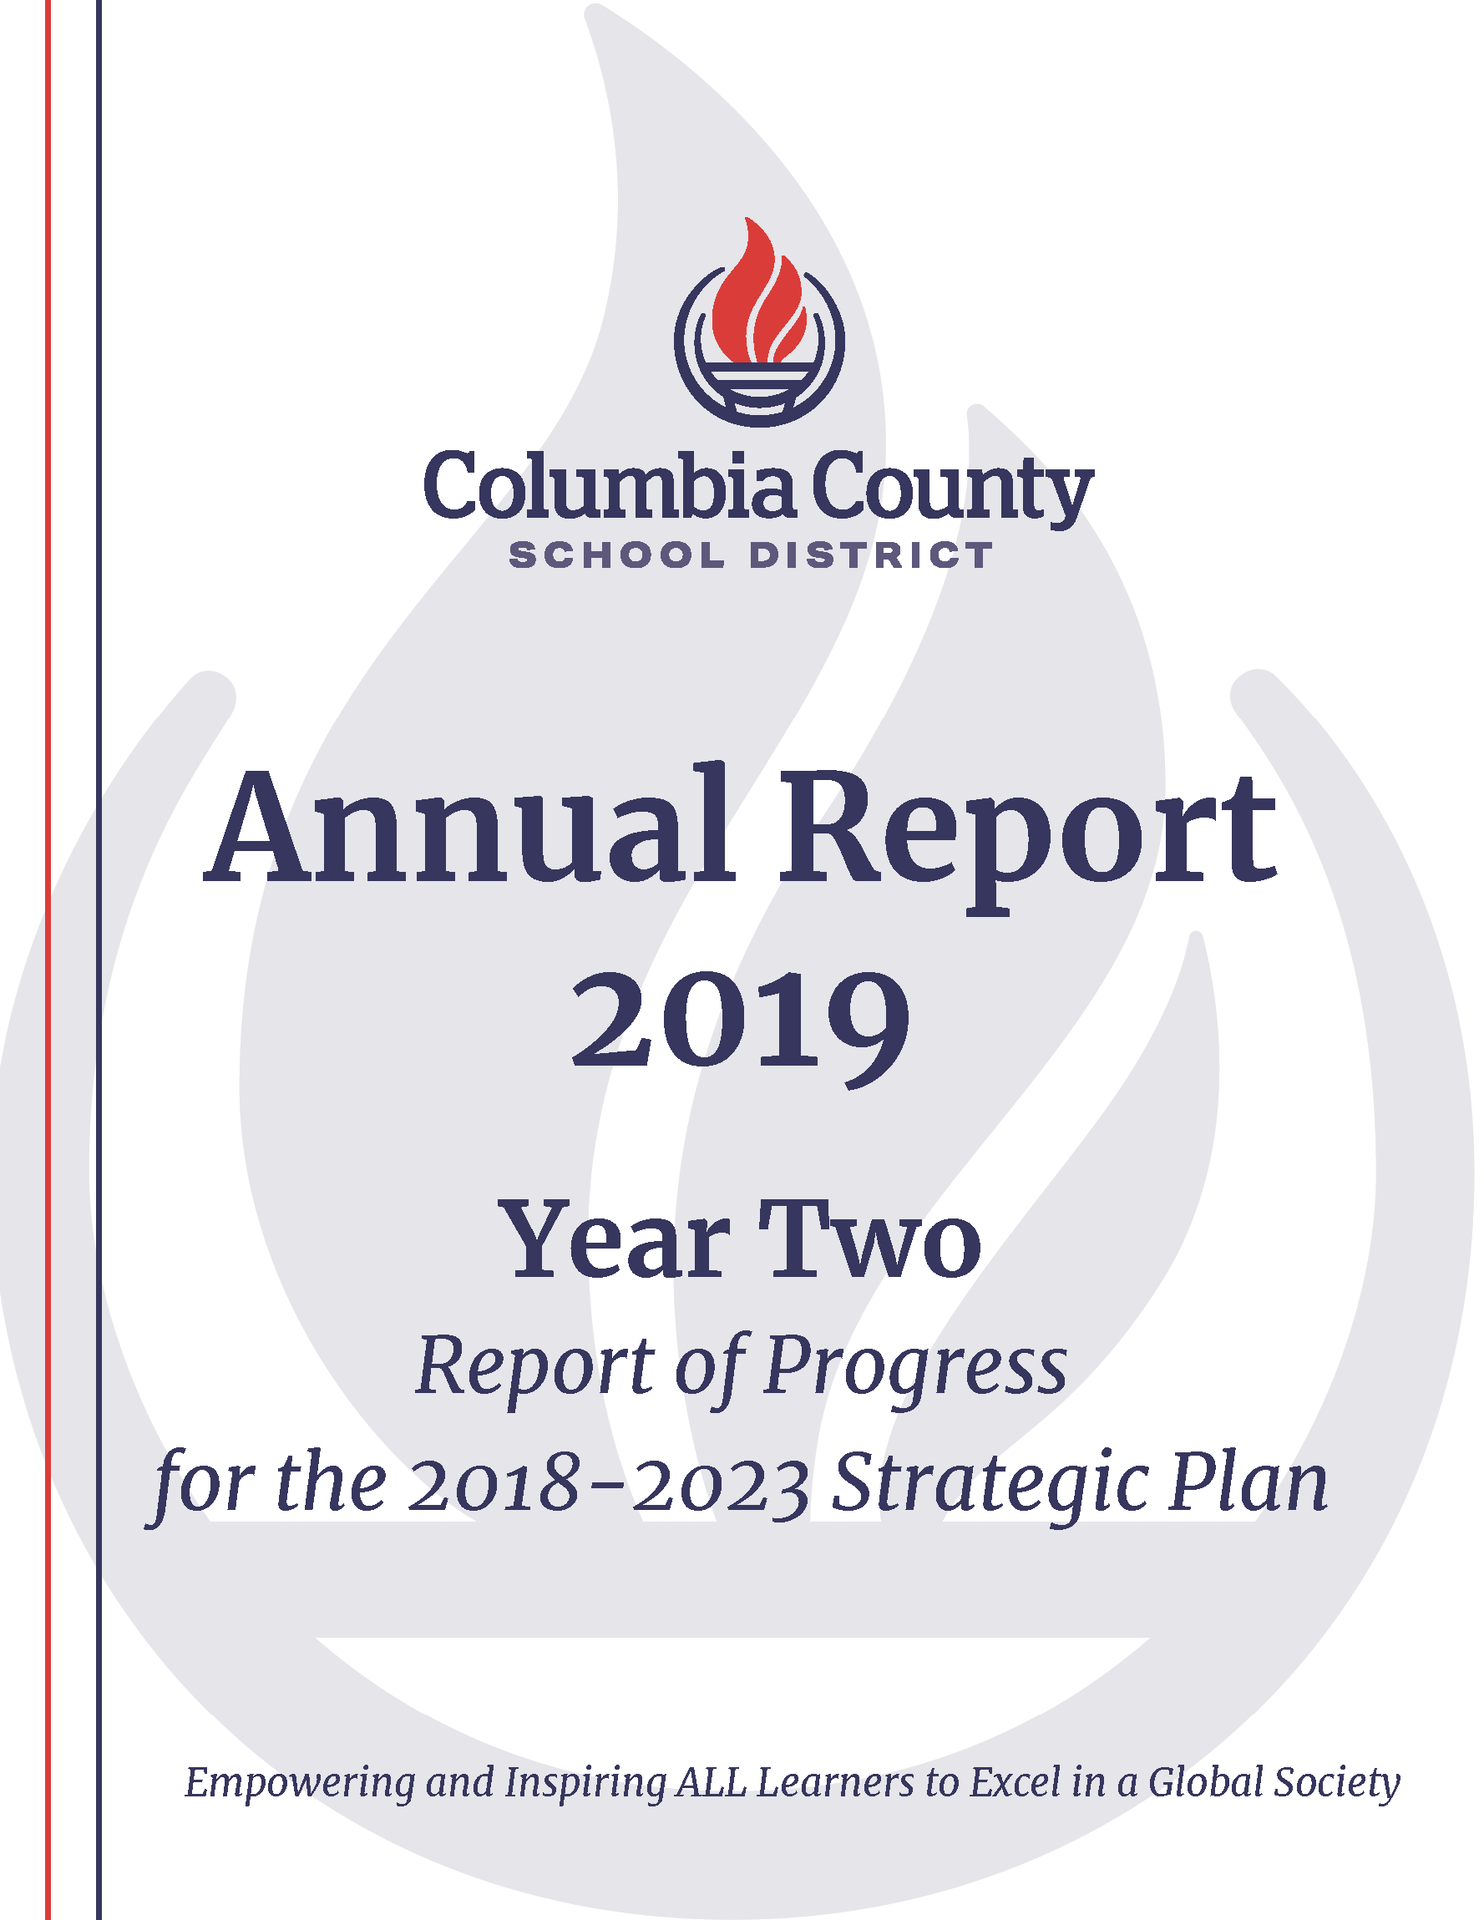 Cover image of the Annual Report and Strategic Plan